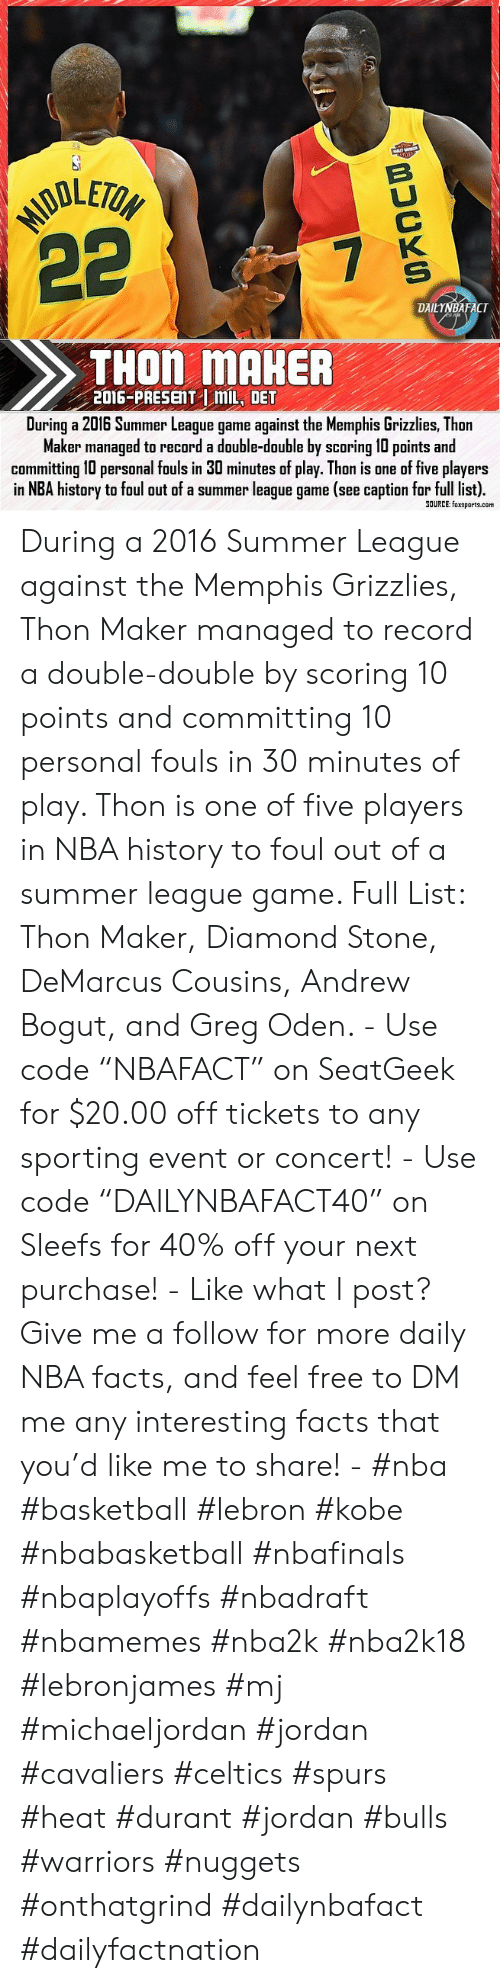 """DeMarcus Cousins: MODLETOH  22  B  7  K  S  DAILYNBAFACT  THON MAHER  2016-PRESENT mL, DET  During a 2016 Summer League game against the Memphis Grizzlies, Thon  Maker managed to record a double-double by scoring 10 points and  committing 10 personal fouls in 30 minutes of play. Thon is one of five players  in NBA history to foul out of a summer league game (see caption for full list).  SOURCE: foxsports.com During a 2016 Summer League against the Memphis Grizzlies, Thon Maker managed to record a double-double by scoring 10 points and committing 10 personal fouls in 30 minutes of play. Thon is one of five players in NBA history to foul out of a summer league game. Full List: Thon Maker, Diamond Stone, DeMarcus Cousins, Andrew Bogut, and Greg Oden. - Use code """"NBAFACT"""" on SeatGeek for $20.00 off tickets to any sporting event or concert! - Use code """"DAILYNBAFACT40"""" on Sleefs for 40% off your next purchase! - Like what I post? Give me a follow for more daily NBA facts, and feel free to DM me any interesting facts that you'd like me to share! - #nba #basketball #lebron #kobe #nbabasketball #nbafinals #nbaplayoffs #nbadraft #nbamemes #nba2k #nba2k18 #lebronjames #mj #michaeljordan #jordan #cavaliers #celtics #spurs #heat #durant #jordan #bulls #warriors #nuggets #onthatgrind #dailynbafact #dailyfactnation"""